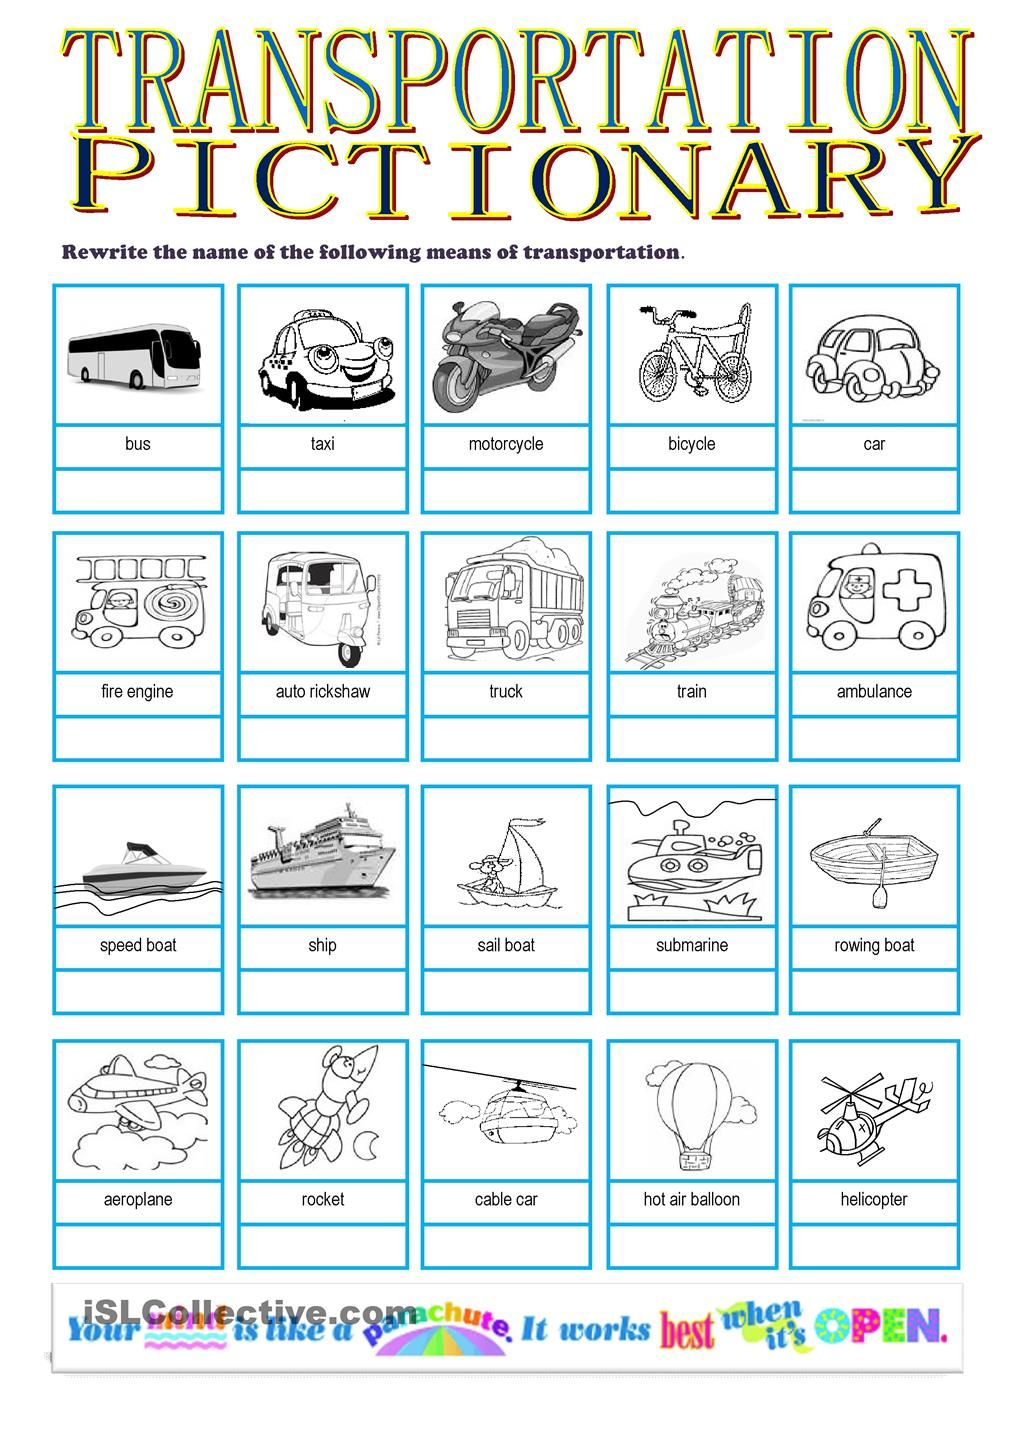 Workbooks using a dictionary worksheets : Transportation Pictionary   คำศัพท์   Pinterest   Picture ...